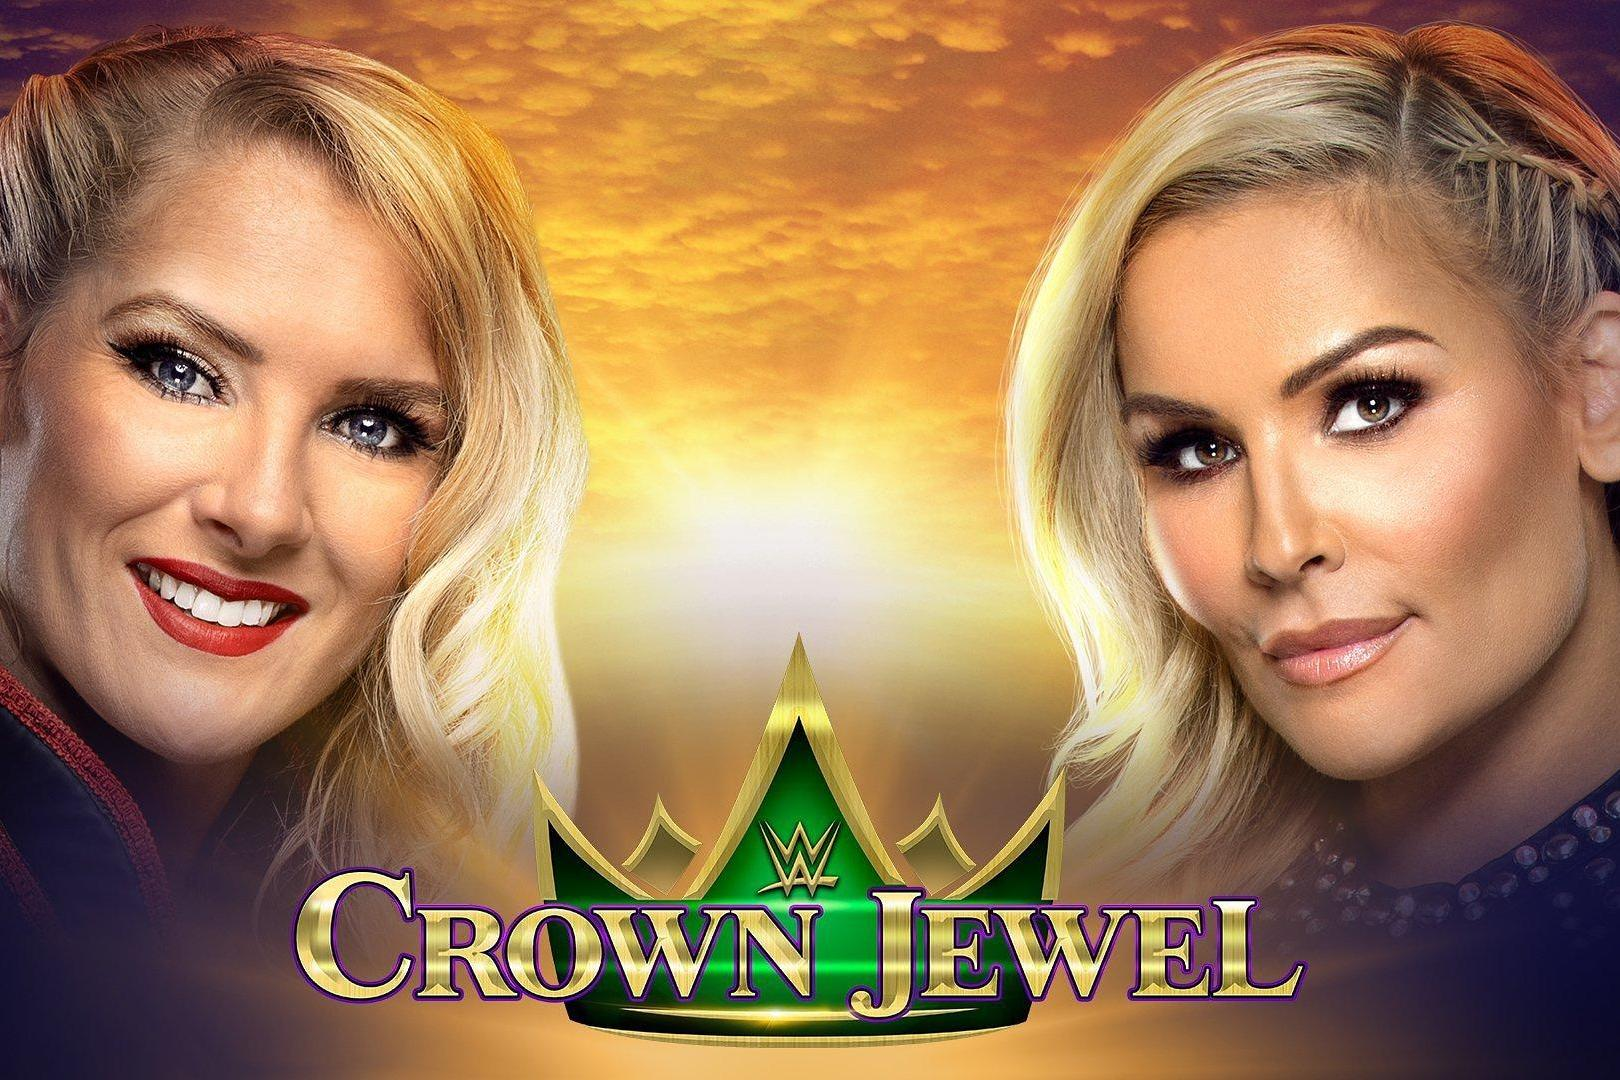 WWE Crown Jewel: Female wrestlers could be forced to 'dress modestly' for historic Saudi Arabia match